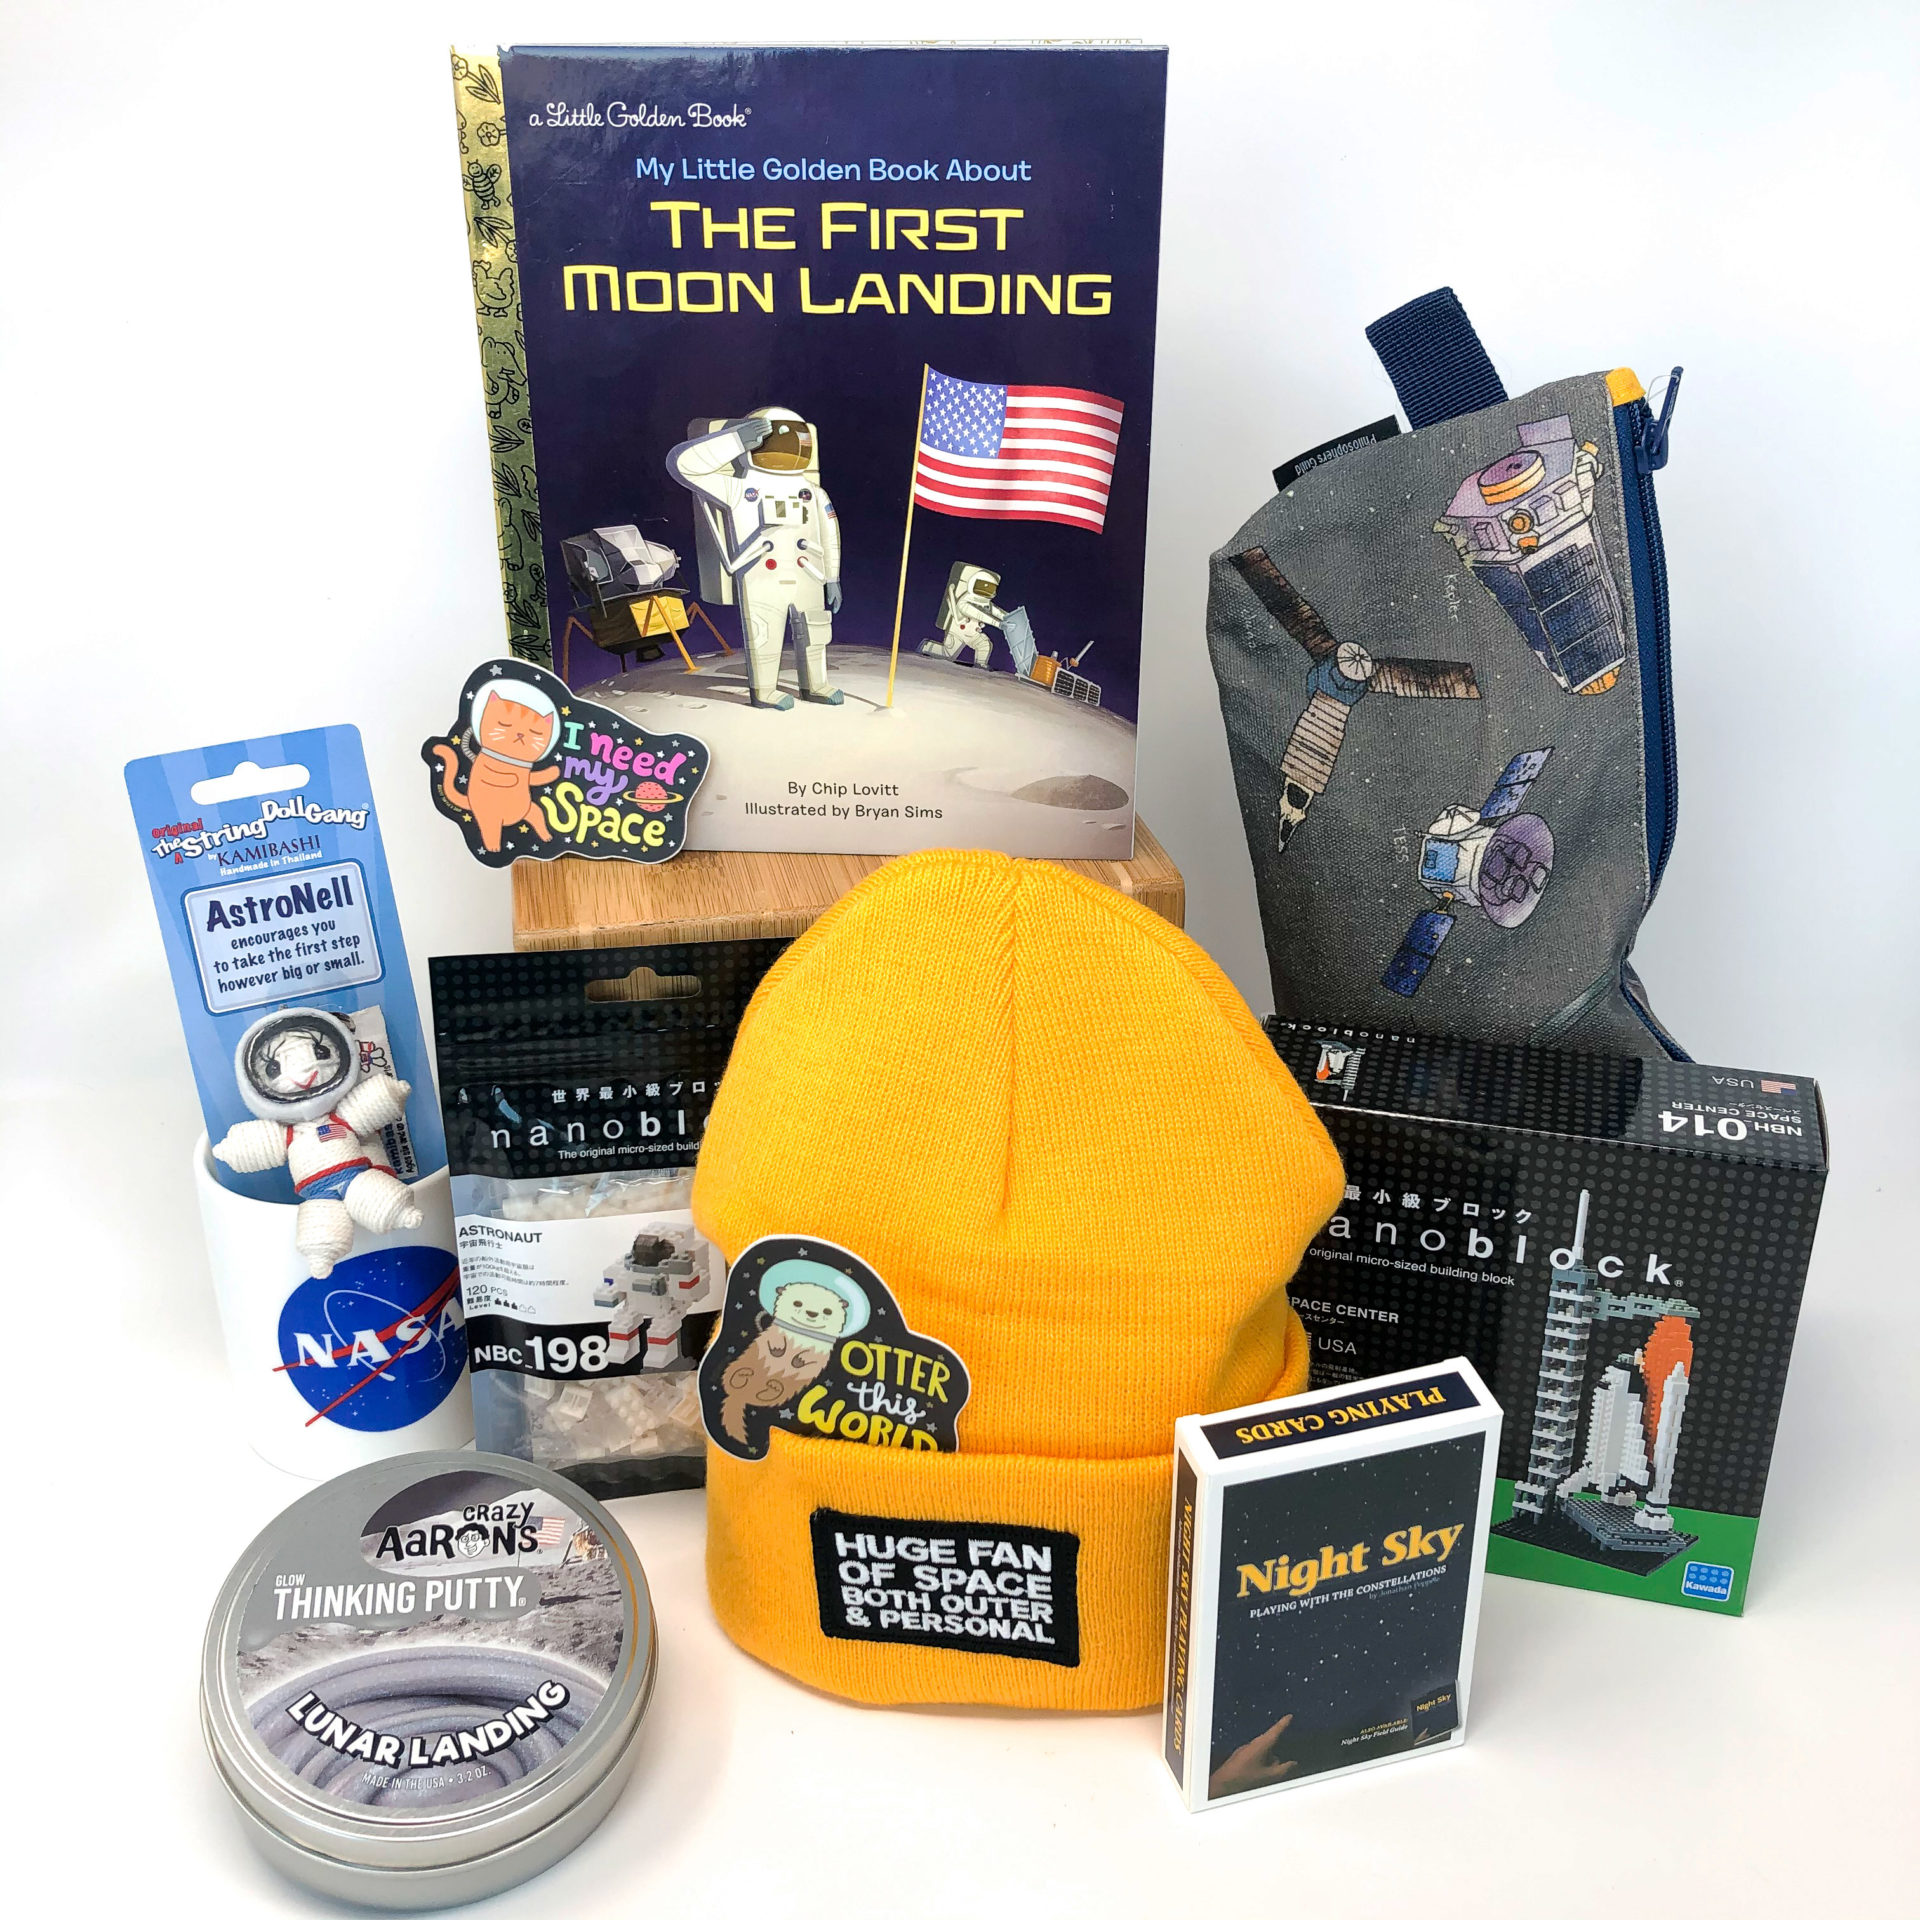 A gathering of space-related gifts